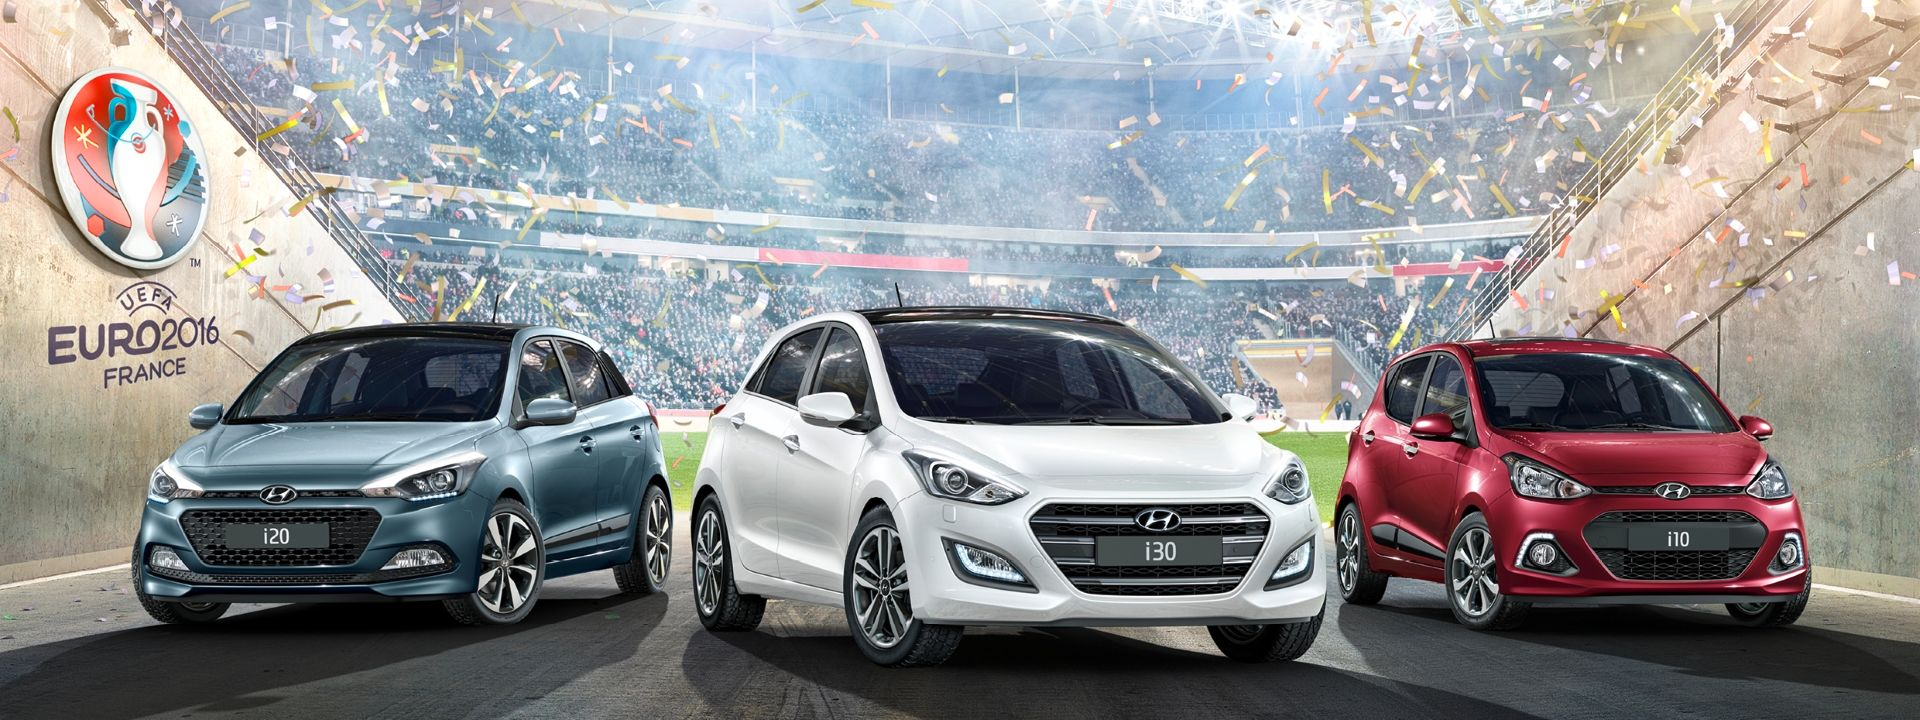 BCC introduces the Hyundai GO! Edition